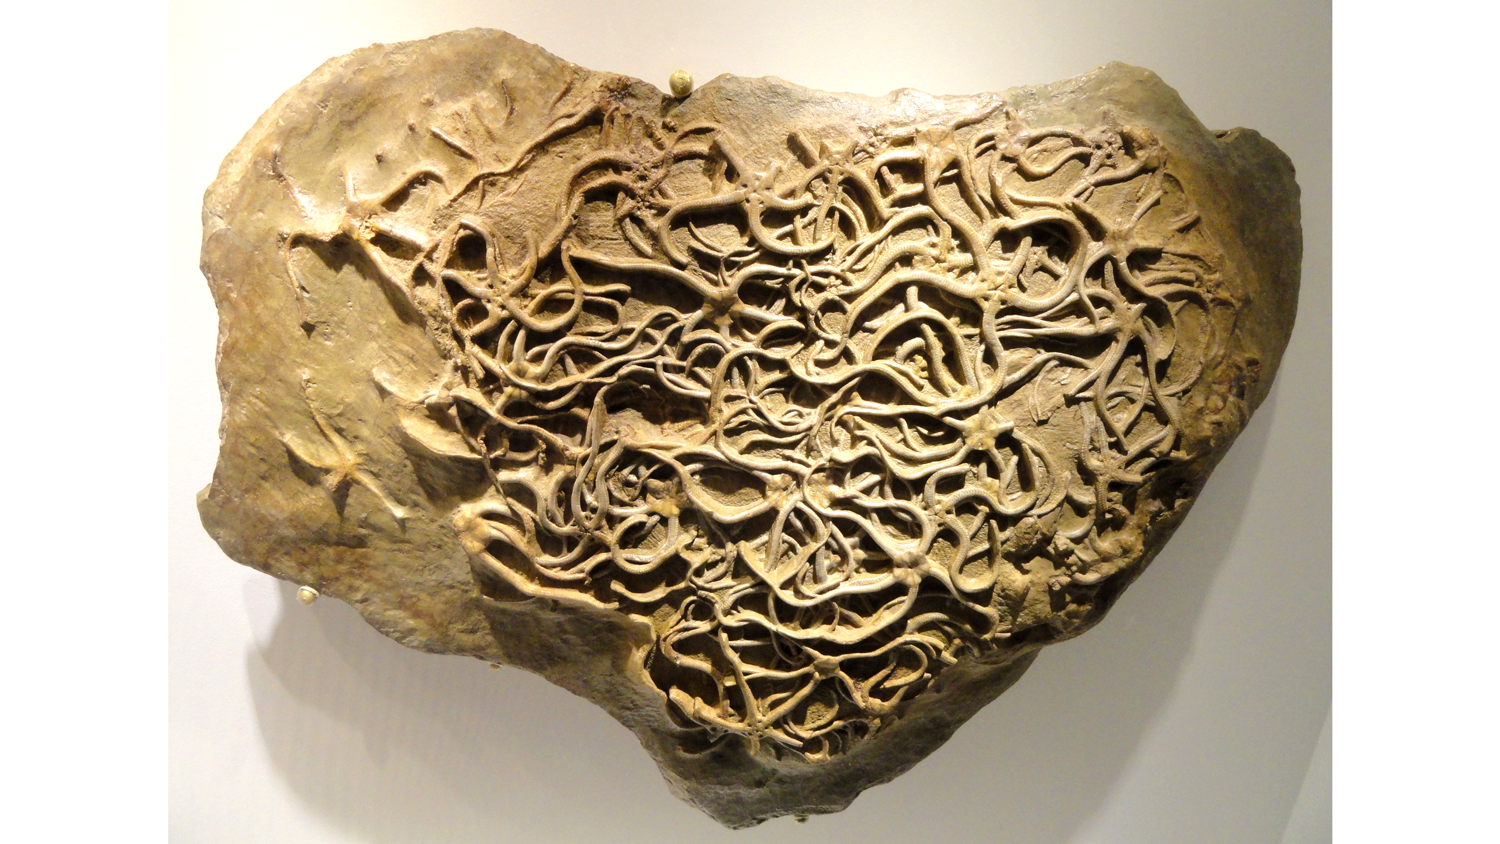 Photograph of Paleocoma egertoni brittle stars from the Jurassic of England